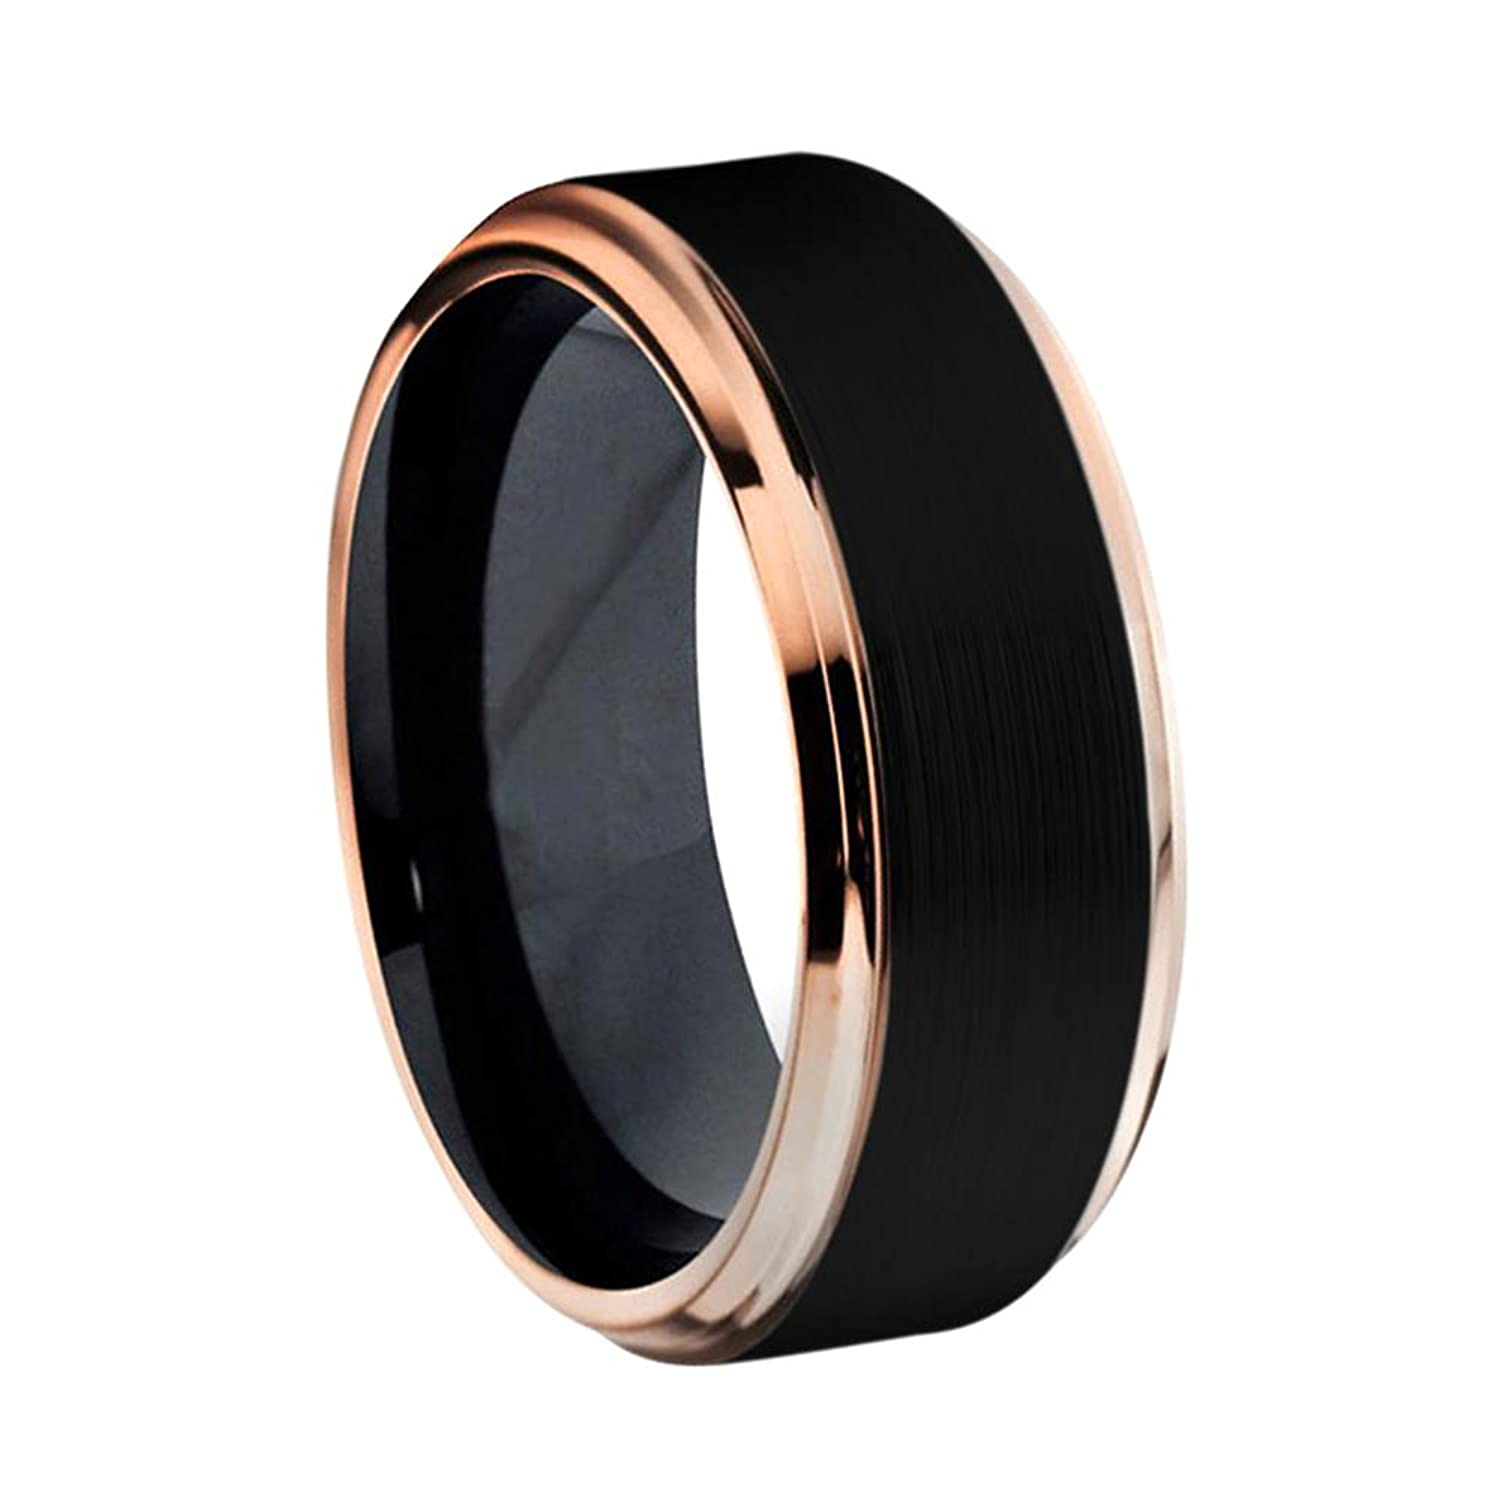 iPauly 8mm Titanium Two-Tone Black IP Rose Gold IP Brushed Center Stepped Edge Ring Wedding Band Ring